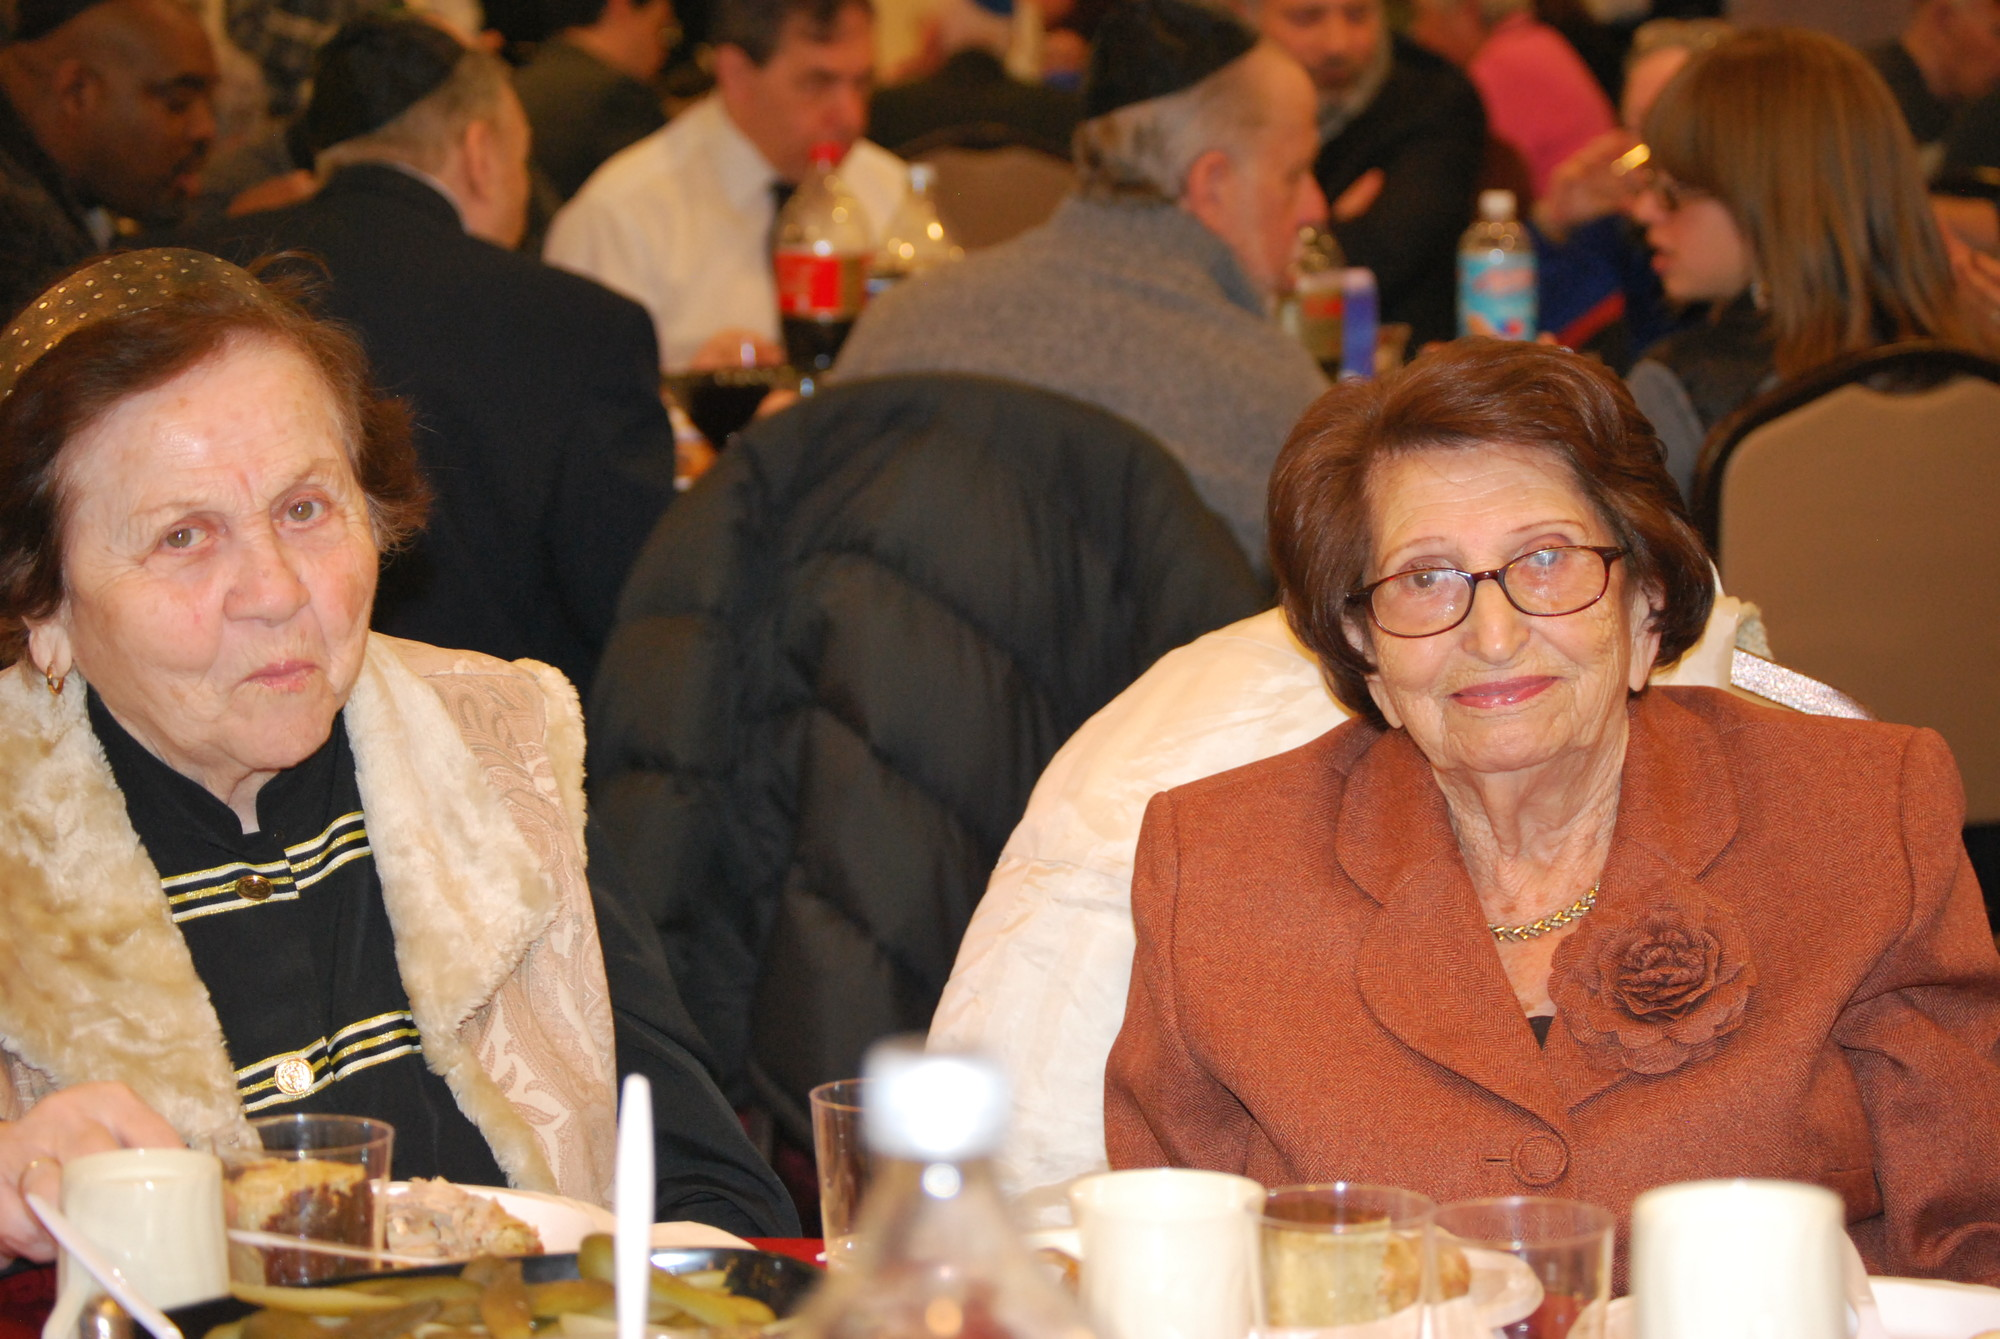 Holocaust survivors and members of the JCC's Chaverim support group Pnina Bliksylberg and Hannah Uncyk at the model Seder.